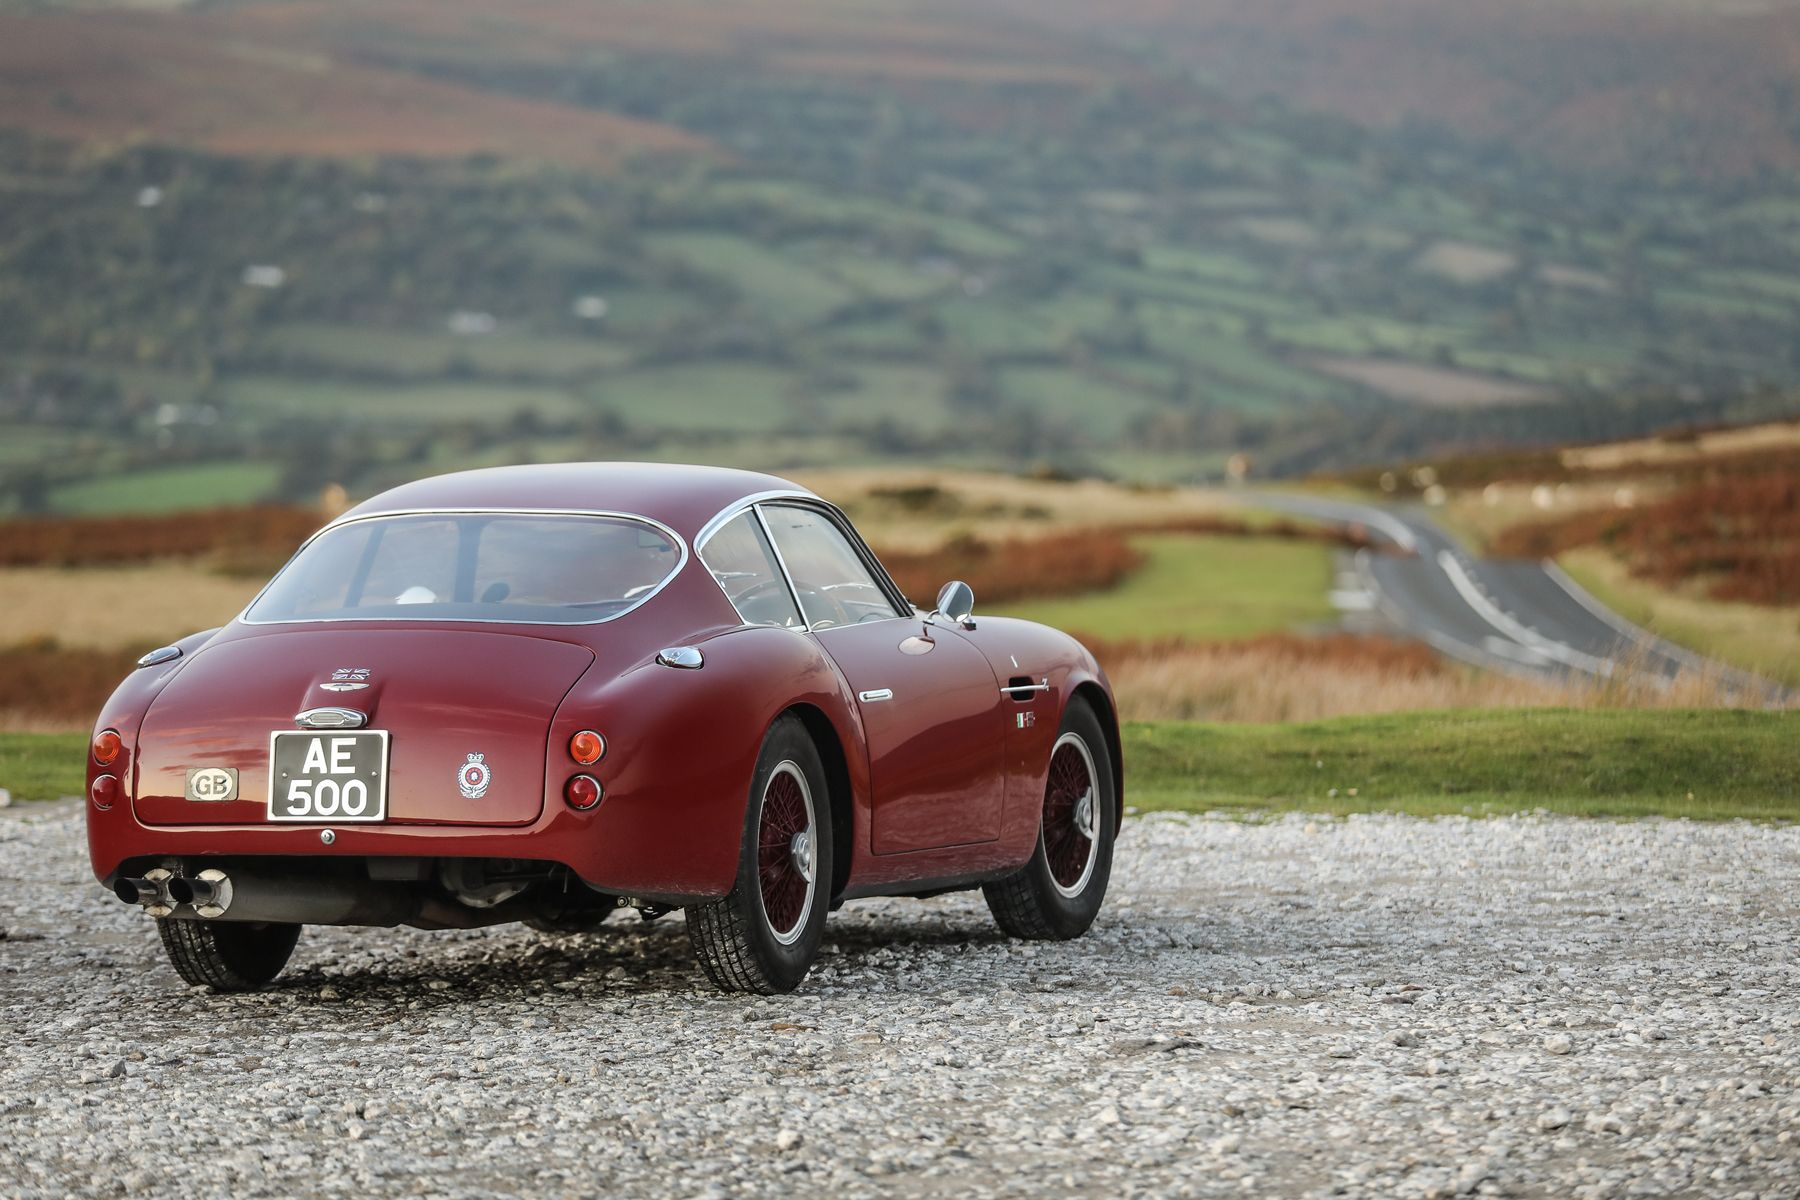 1961 Aston Martin Db4 Gt Zagato Could Go For 10m